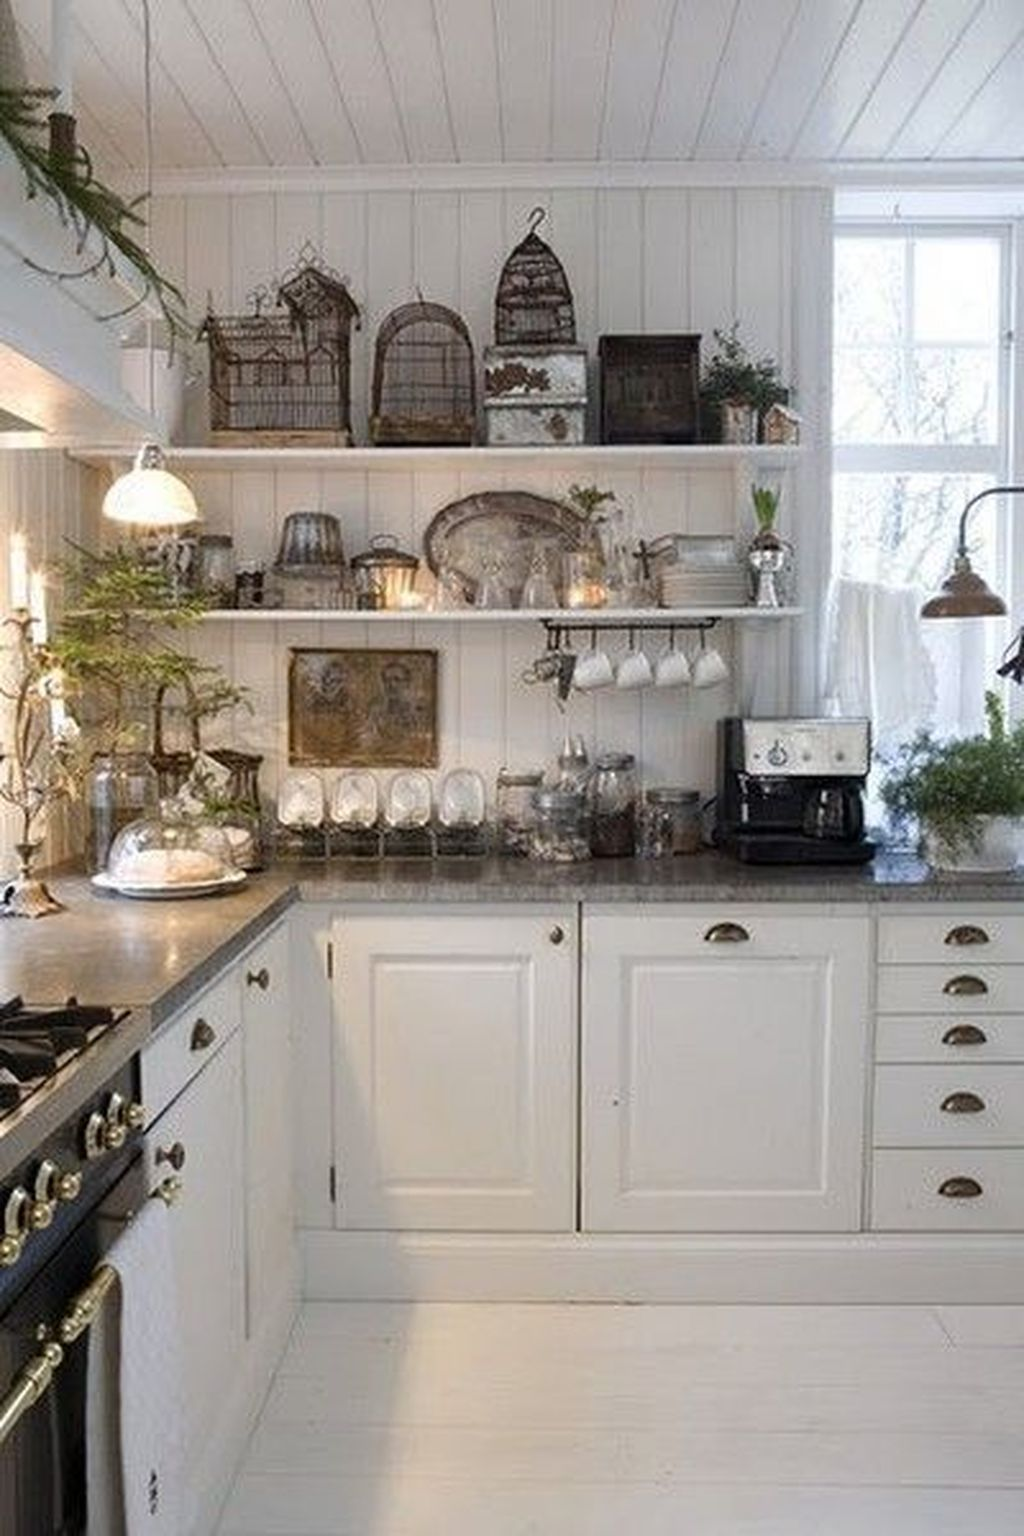 53 classy french country kitchen design ideas kitchen design ideas rh pinterest ca